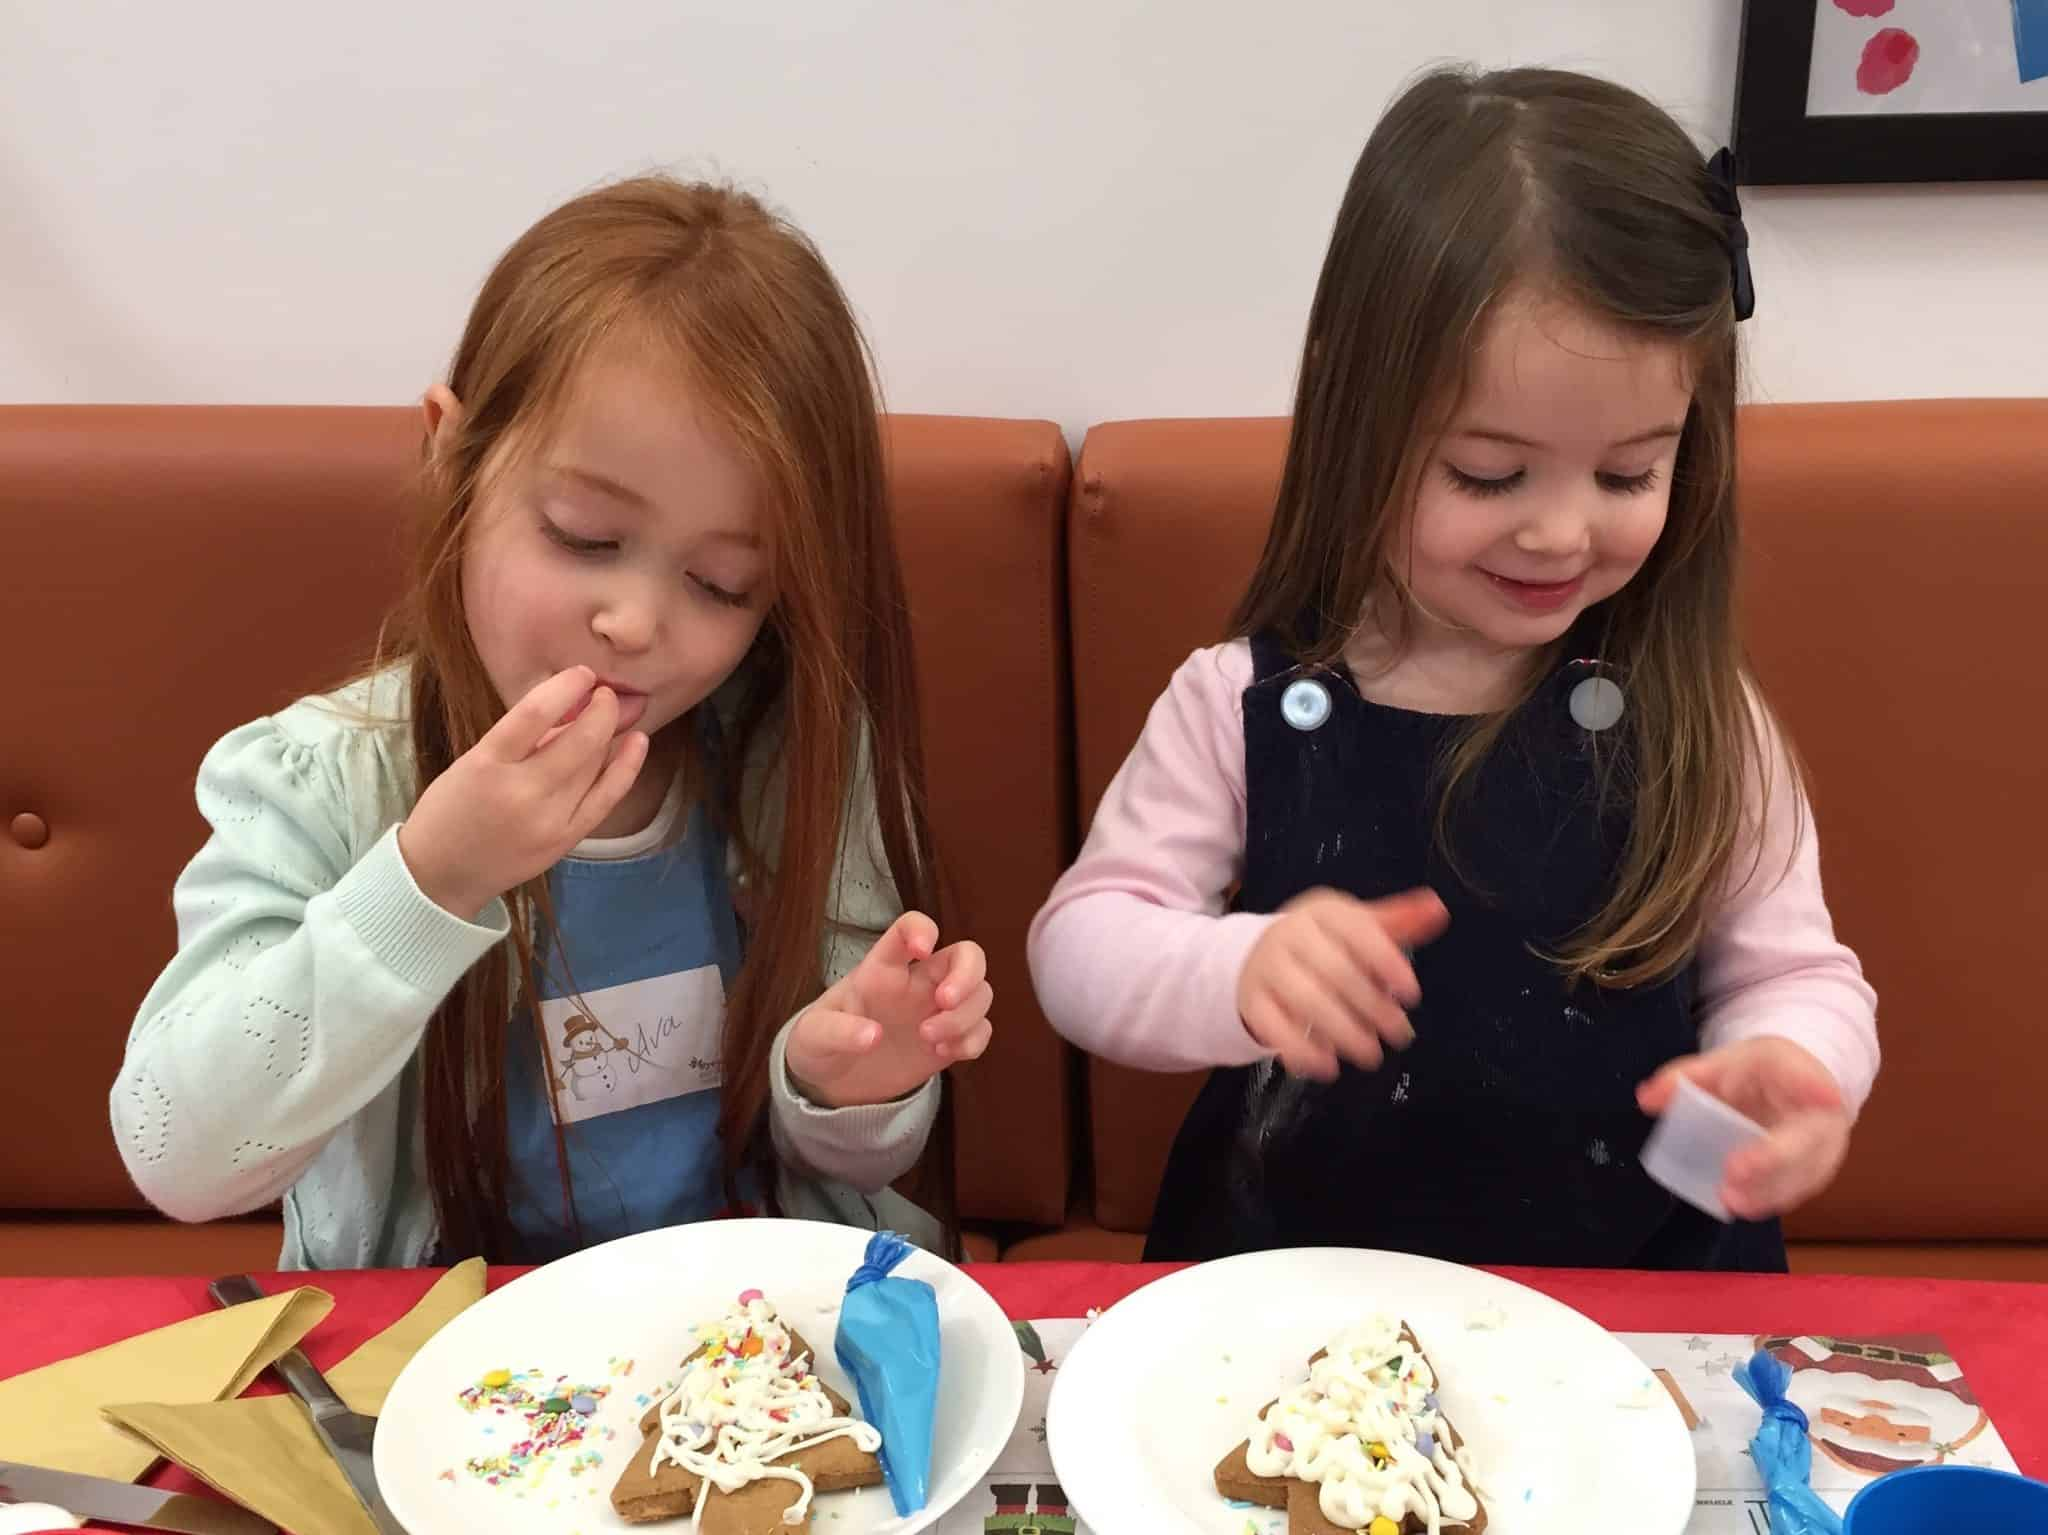 Ava and Thea only ate a BIT of the icing